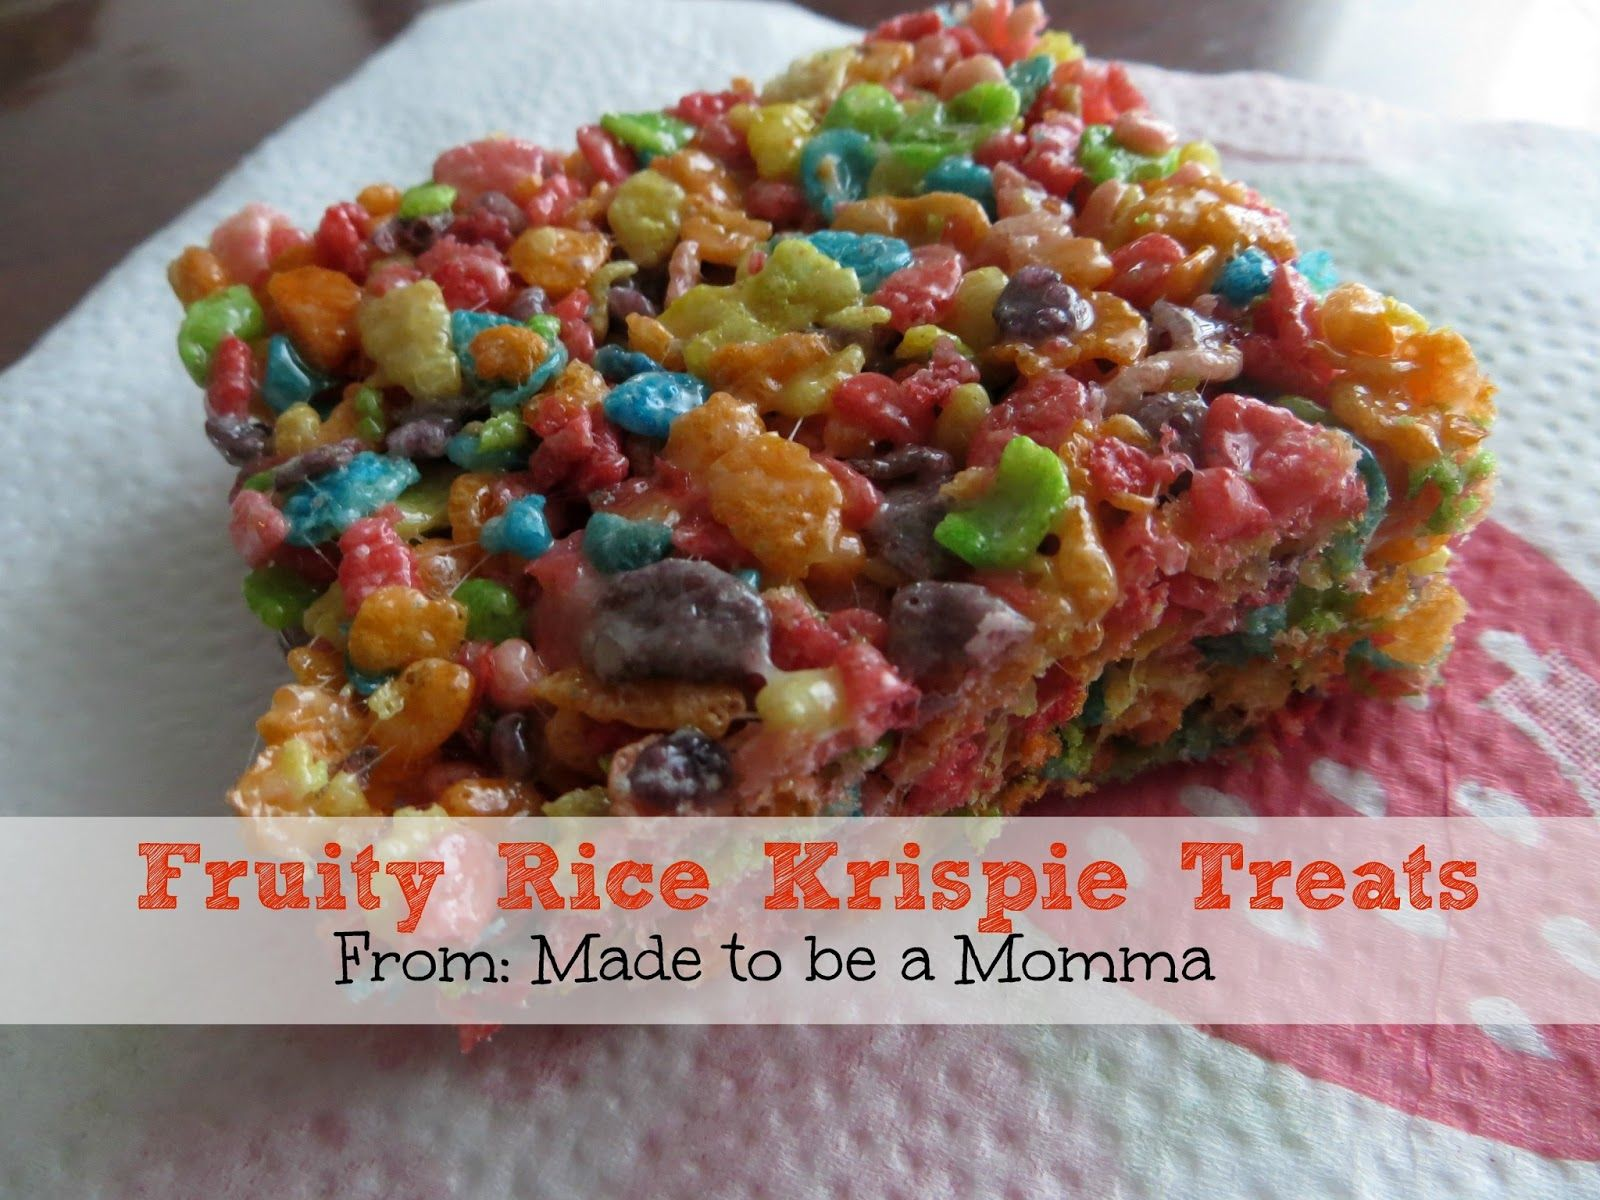 Fruity Rice Krispie Treats - Made To Be A Momma